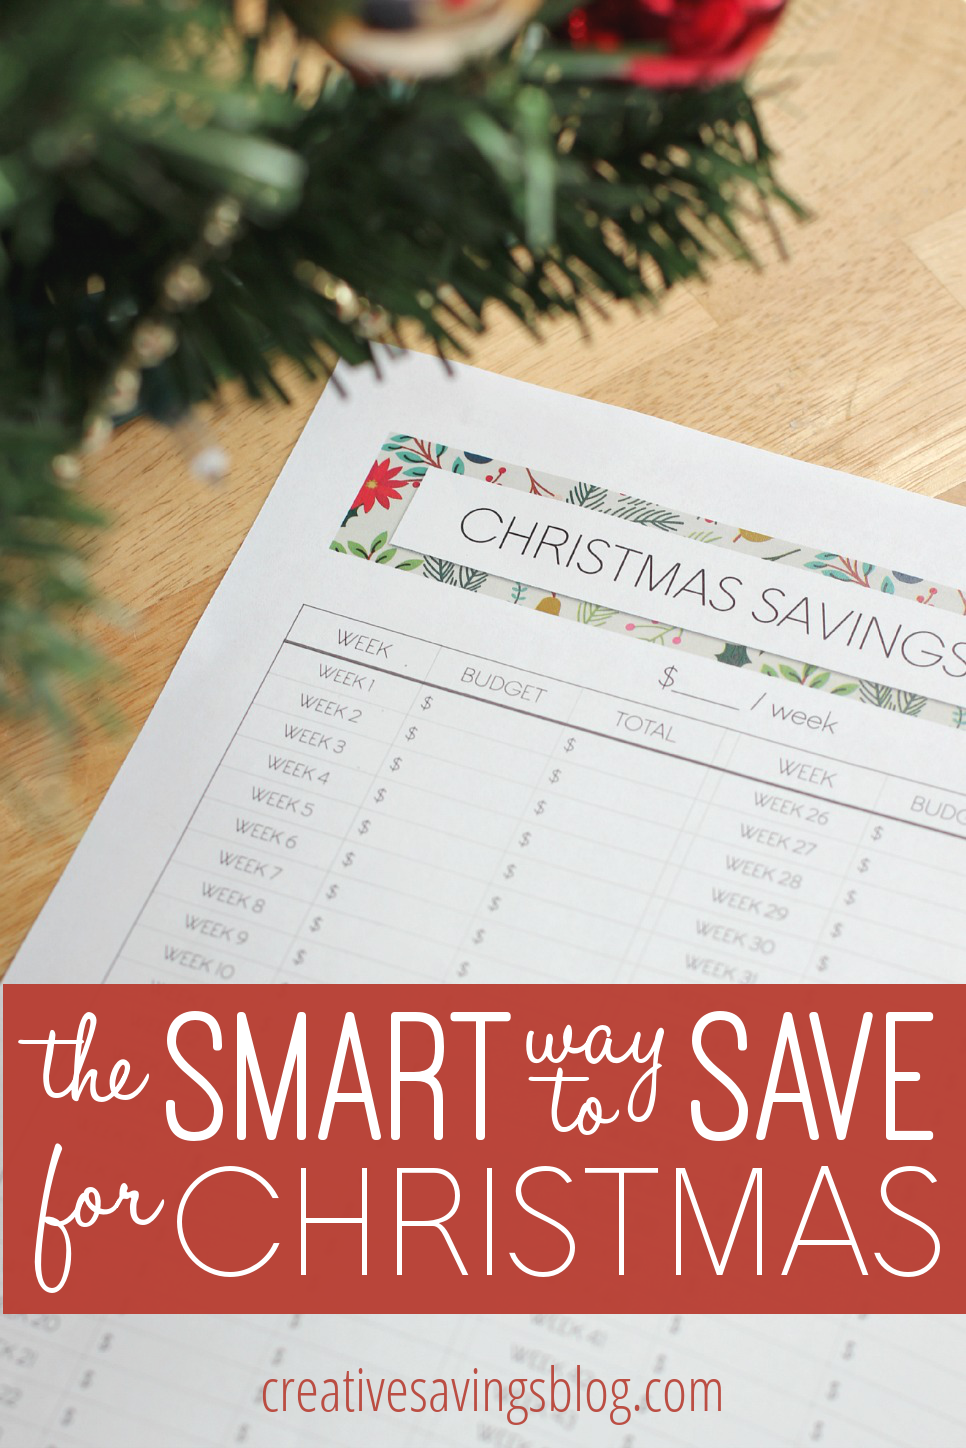 discover the smart way to save for christmas with this simple worksheet and never worry about